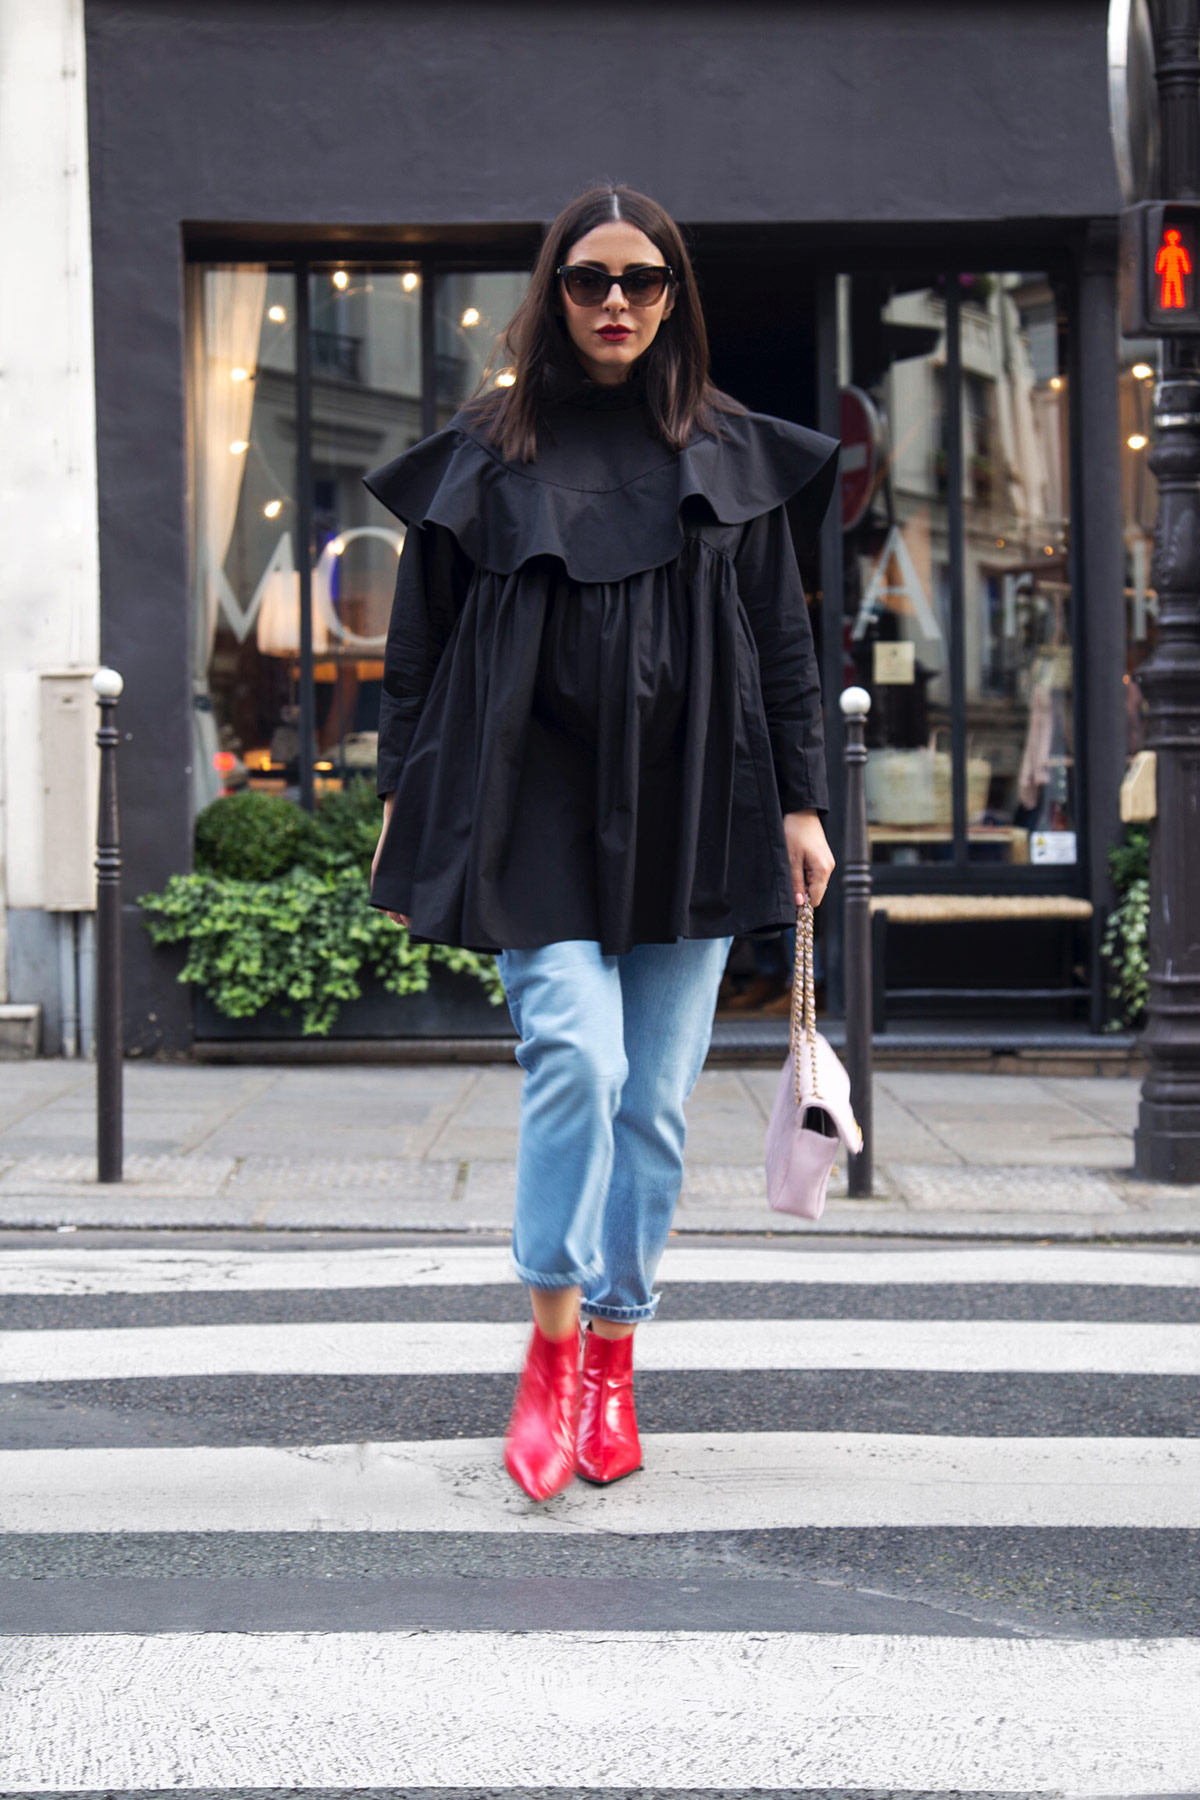 black frill shirt and red boots Stella Asteria at Paris Fashion Week SS18